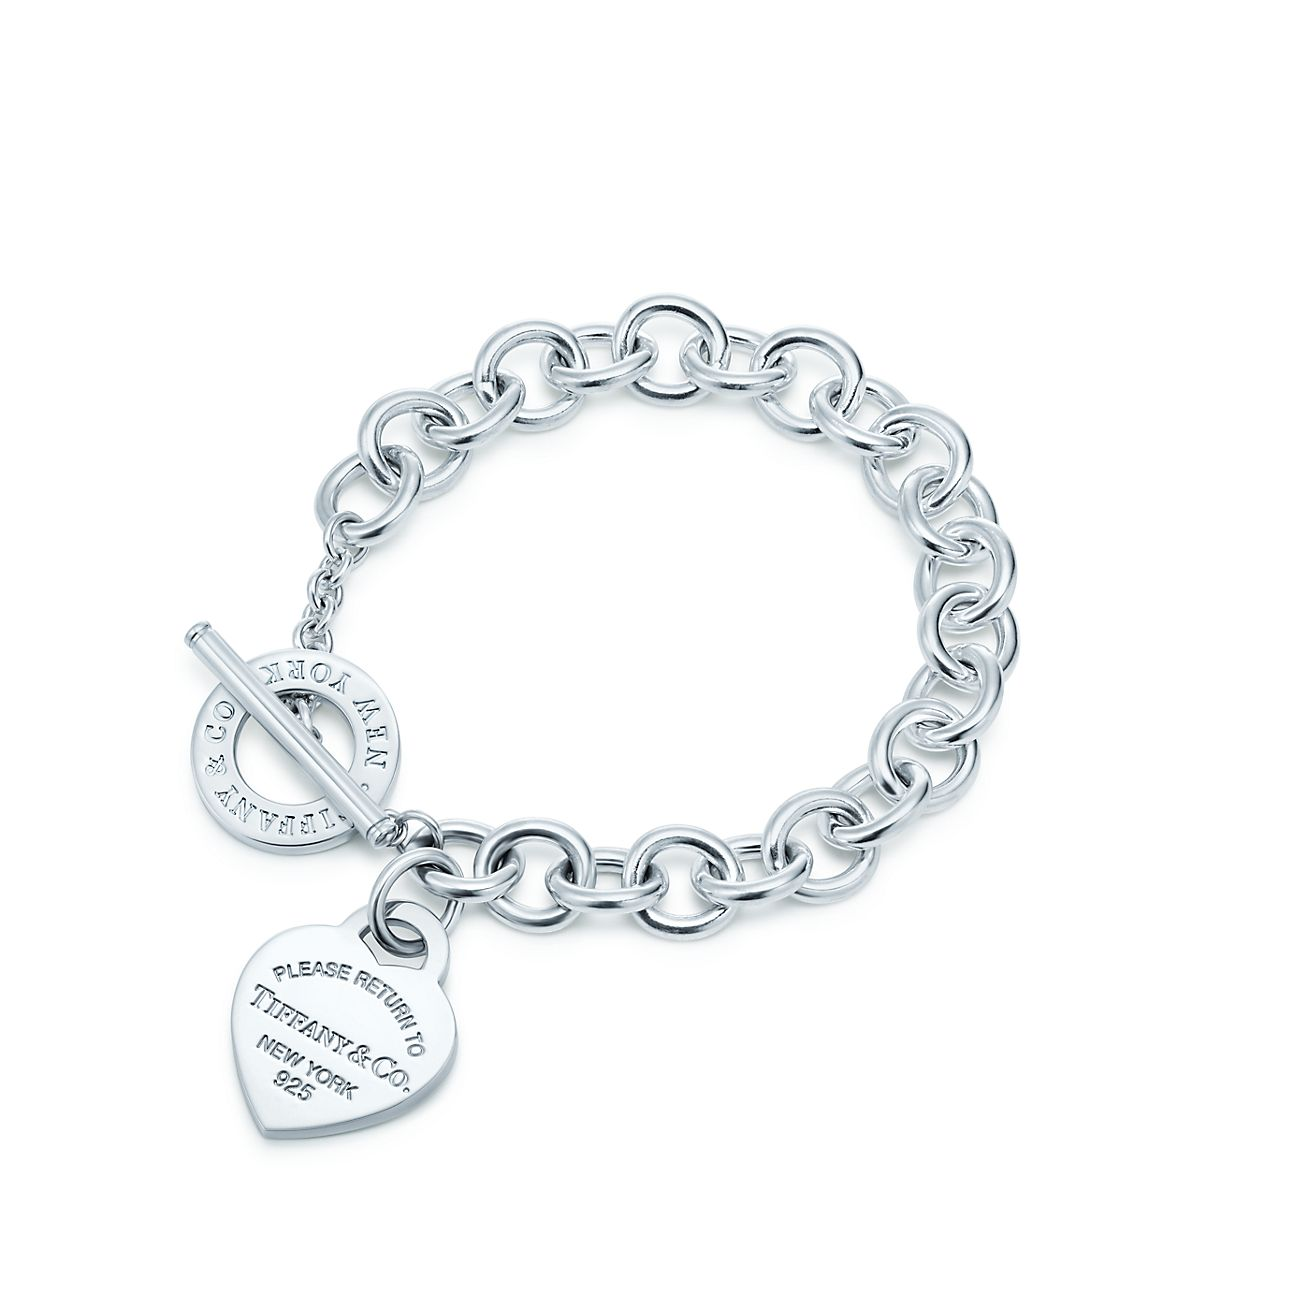 Jewelry Bracelets Return To Tiffany Heart Tag Toggle Bracelet Grp06971 Tiffany Jewelry Free Shipping